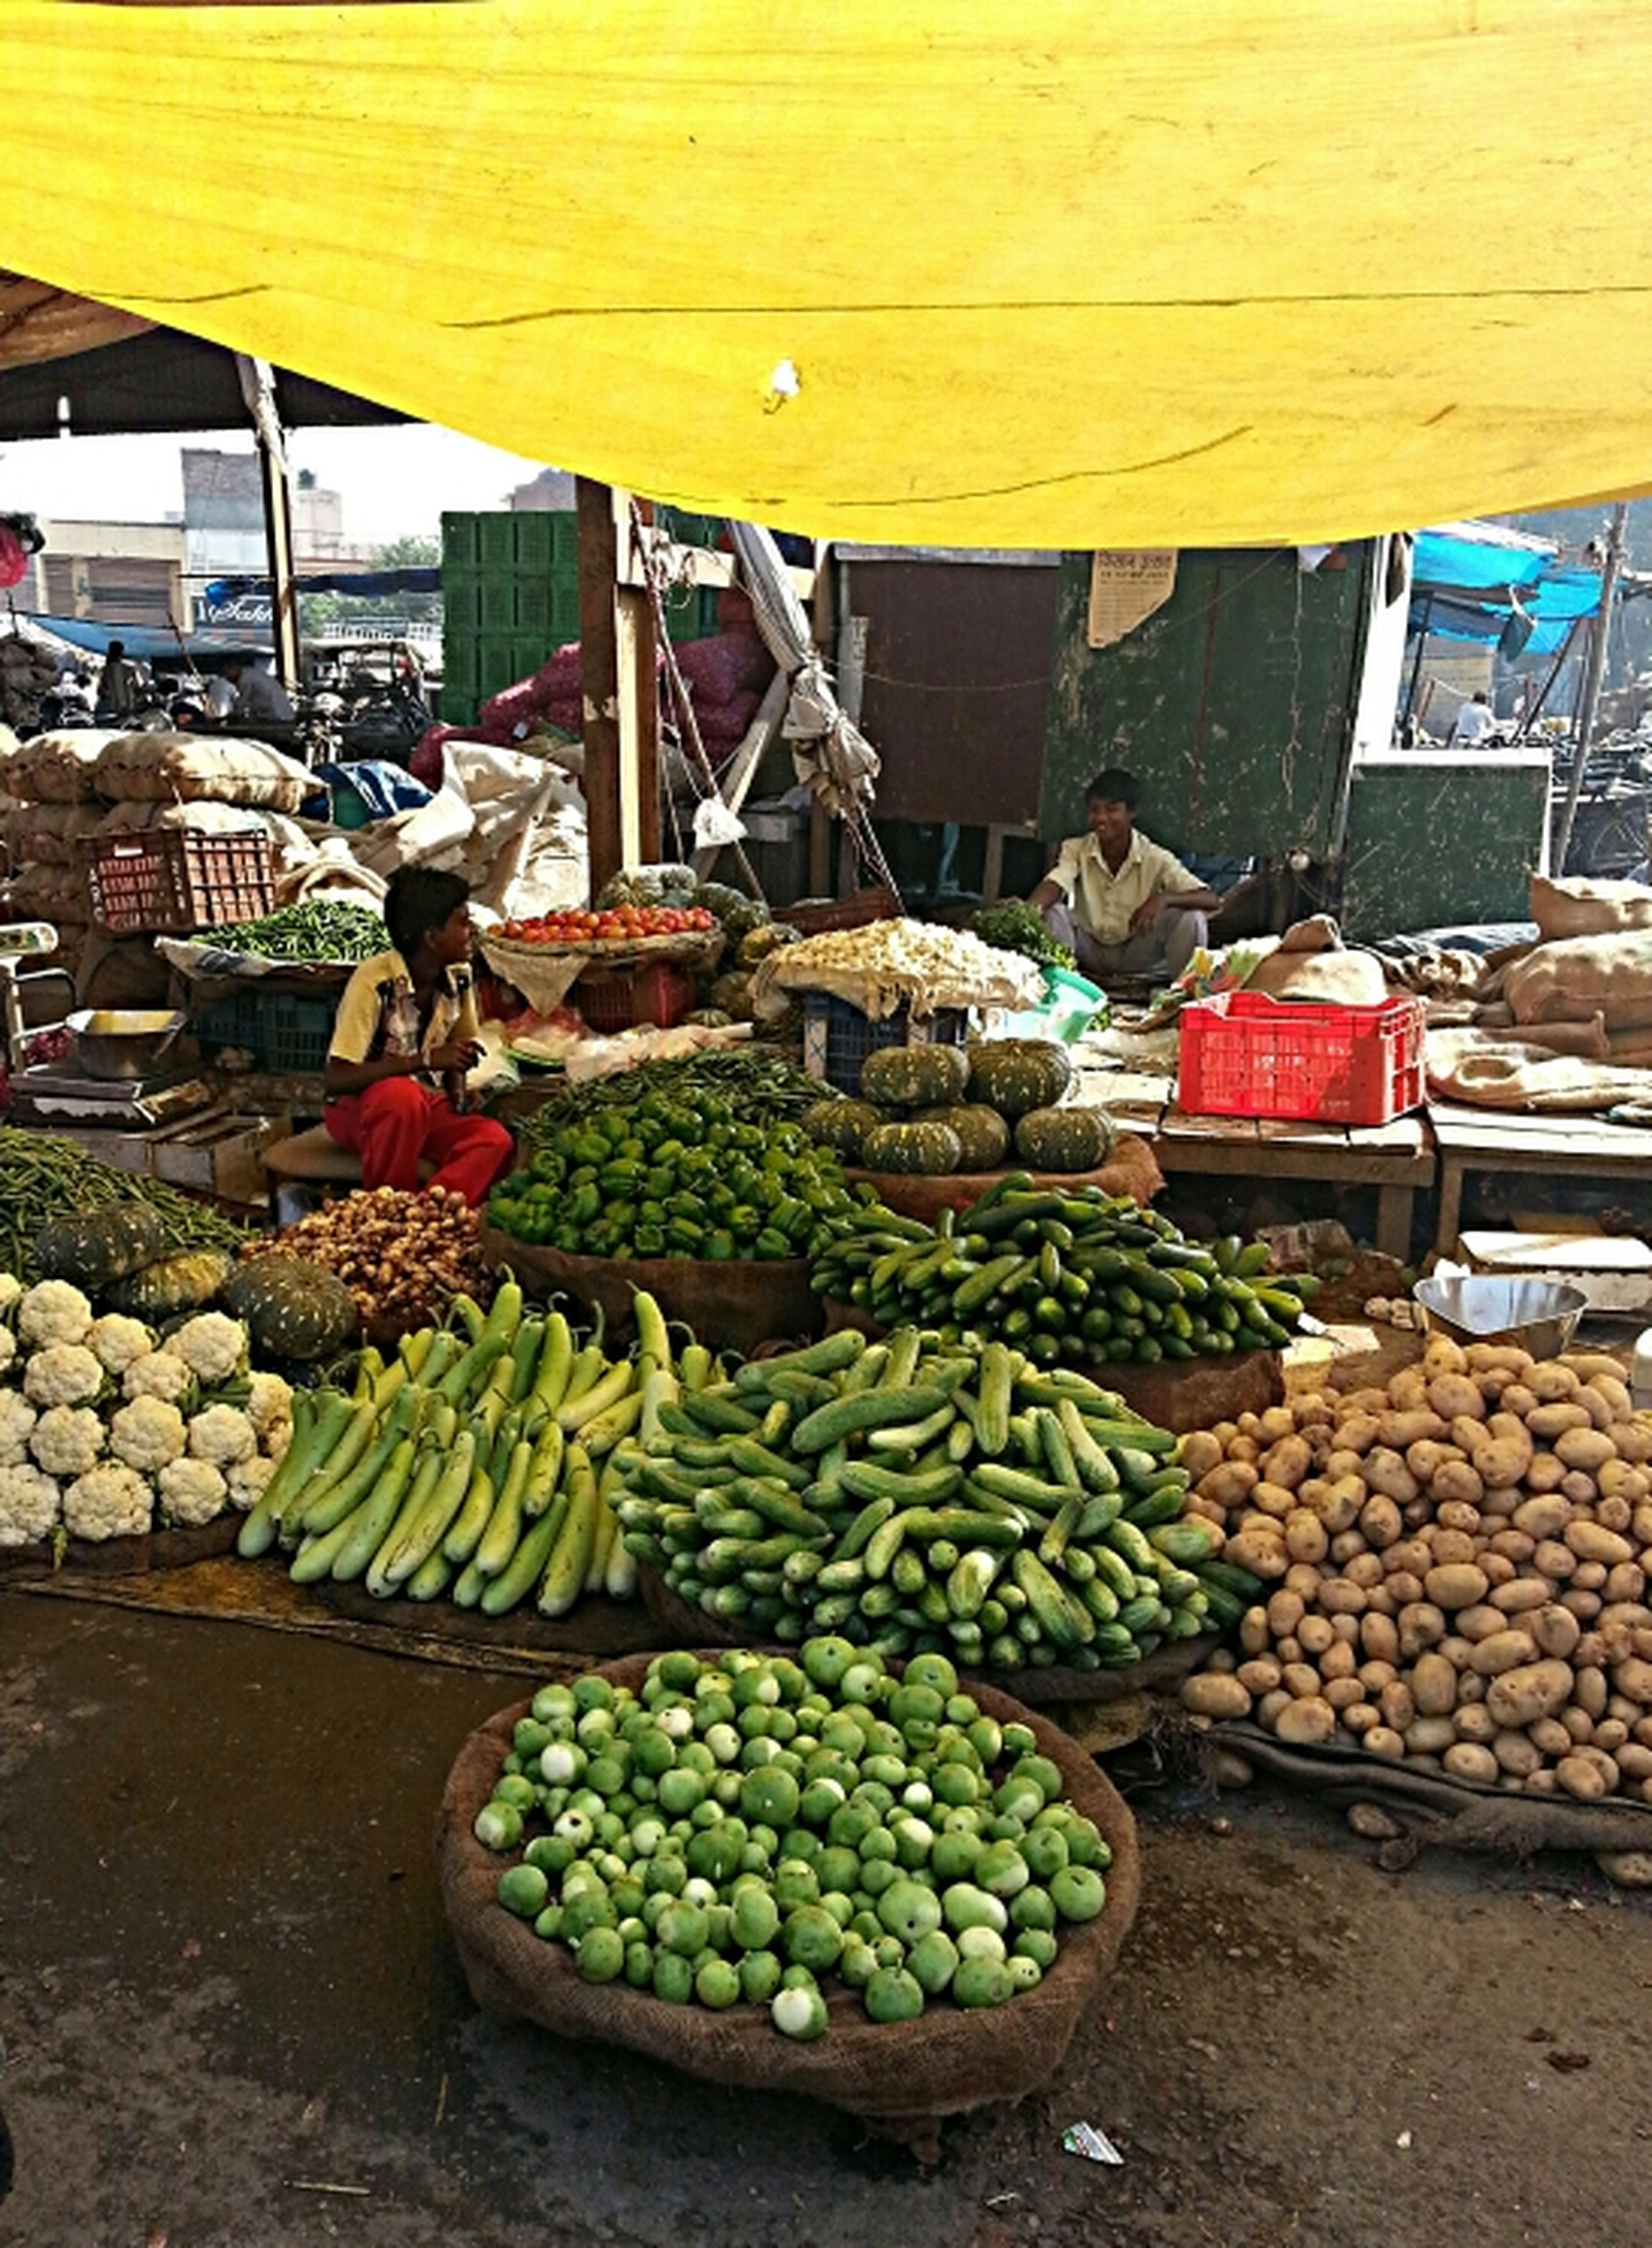 food and drink, healthy eating, food, market stall, for sale, market, large group of objects, retail, abundance, freshness, fruit, vegetable, variation, choice, stack, heap, display, crate, basket, organic